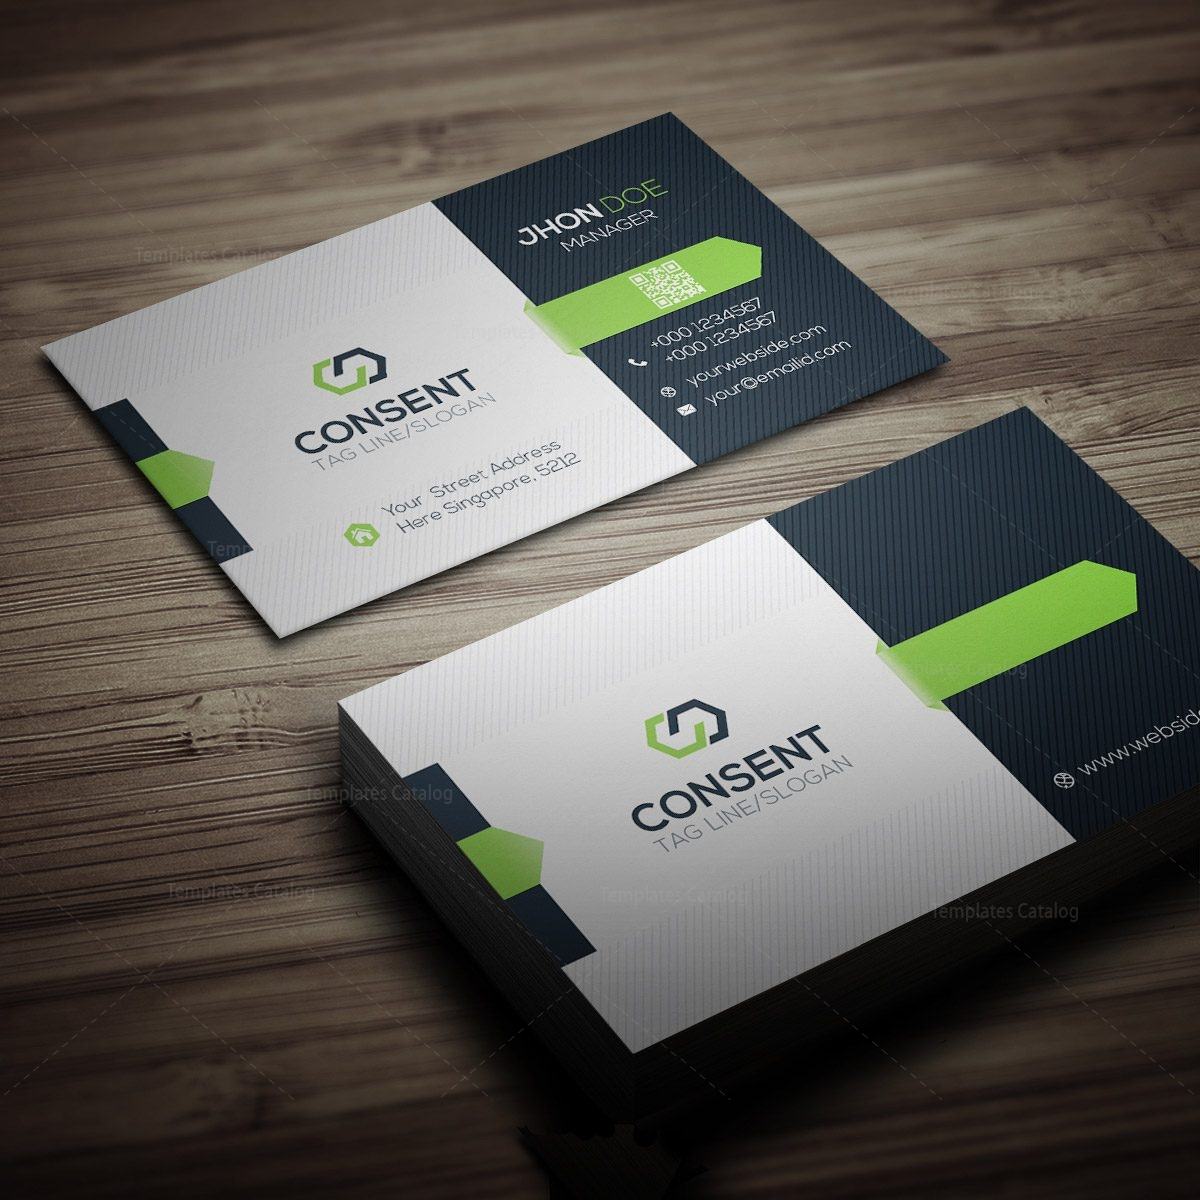 Consent business card template 000275 template catalog for Template for business card